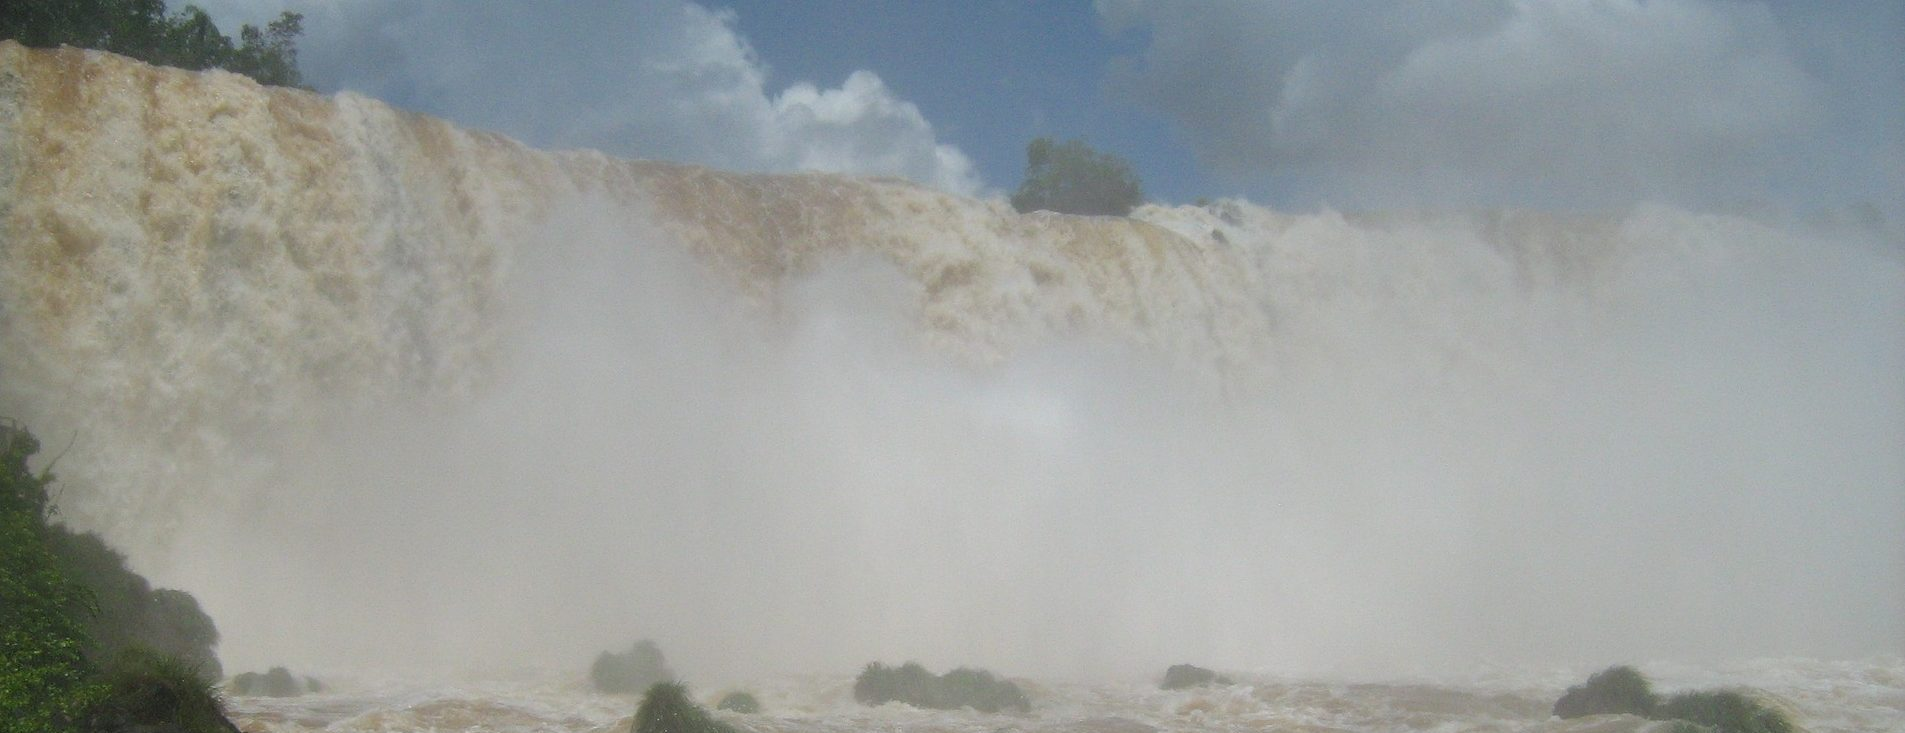 A wall of white water at the Iguassu falls.